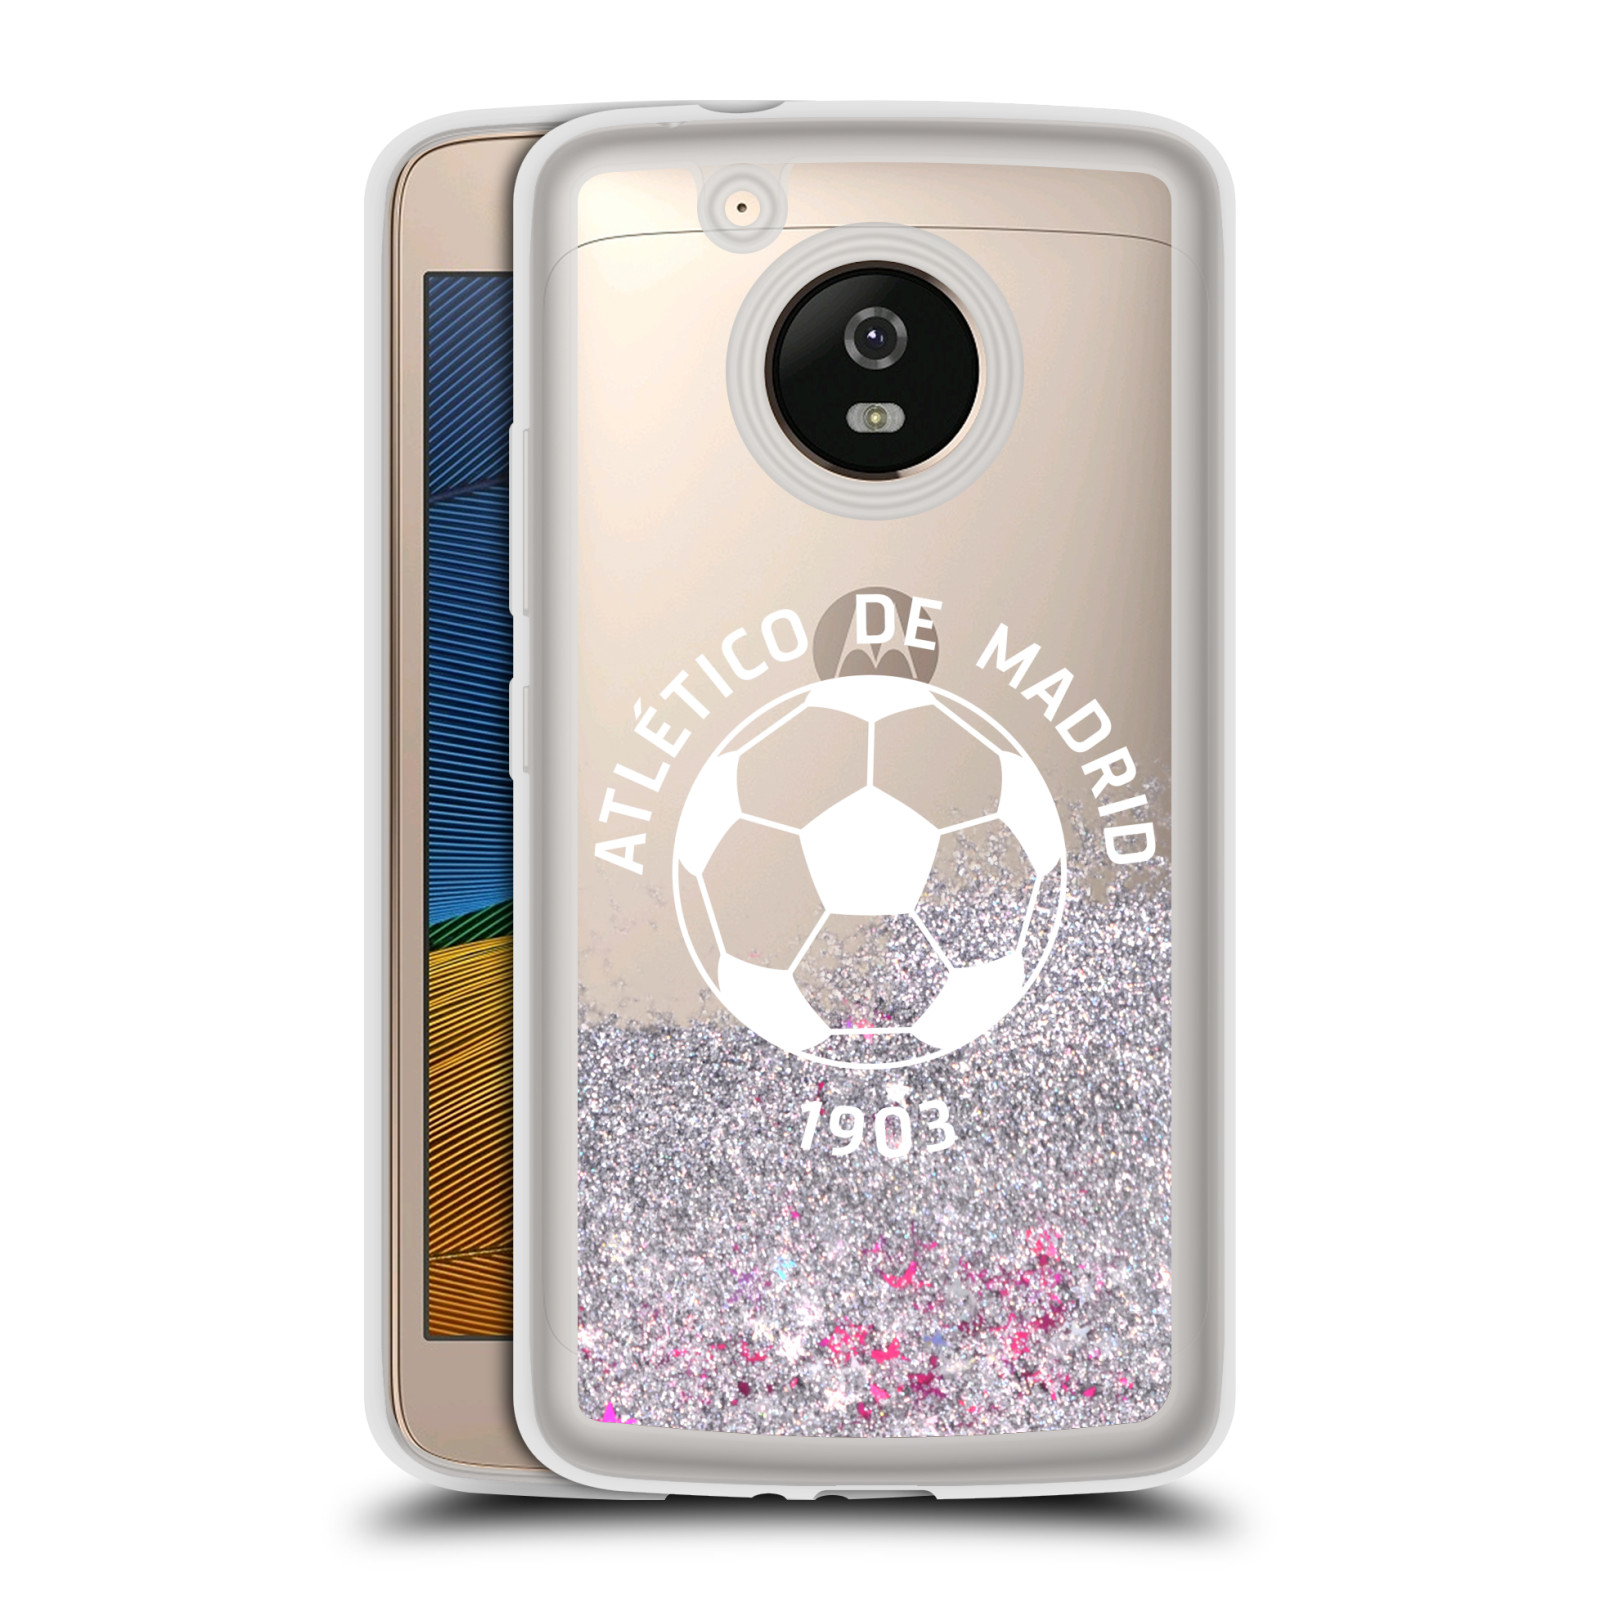 ATLETICO-MADRID-VARIOUS-DESIGNS-SILVER-HYBRID-LIQUID-GLITTER-FOR-MOTOROLA-PHONES